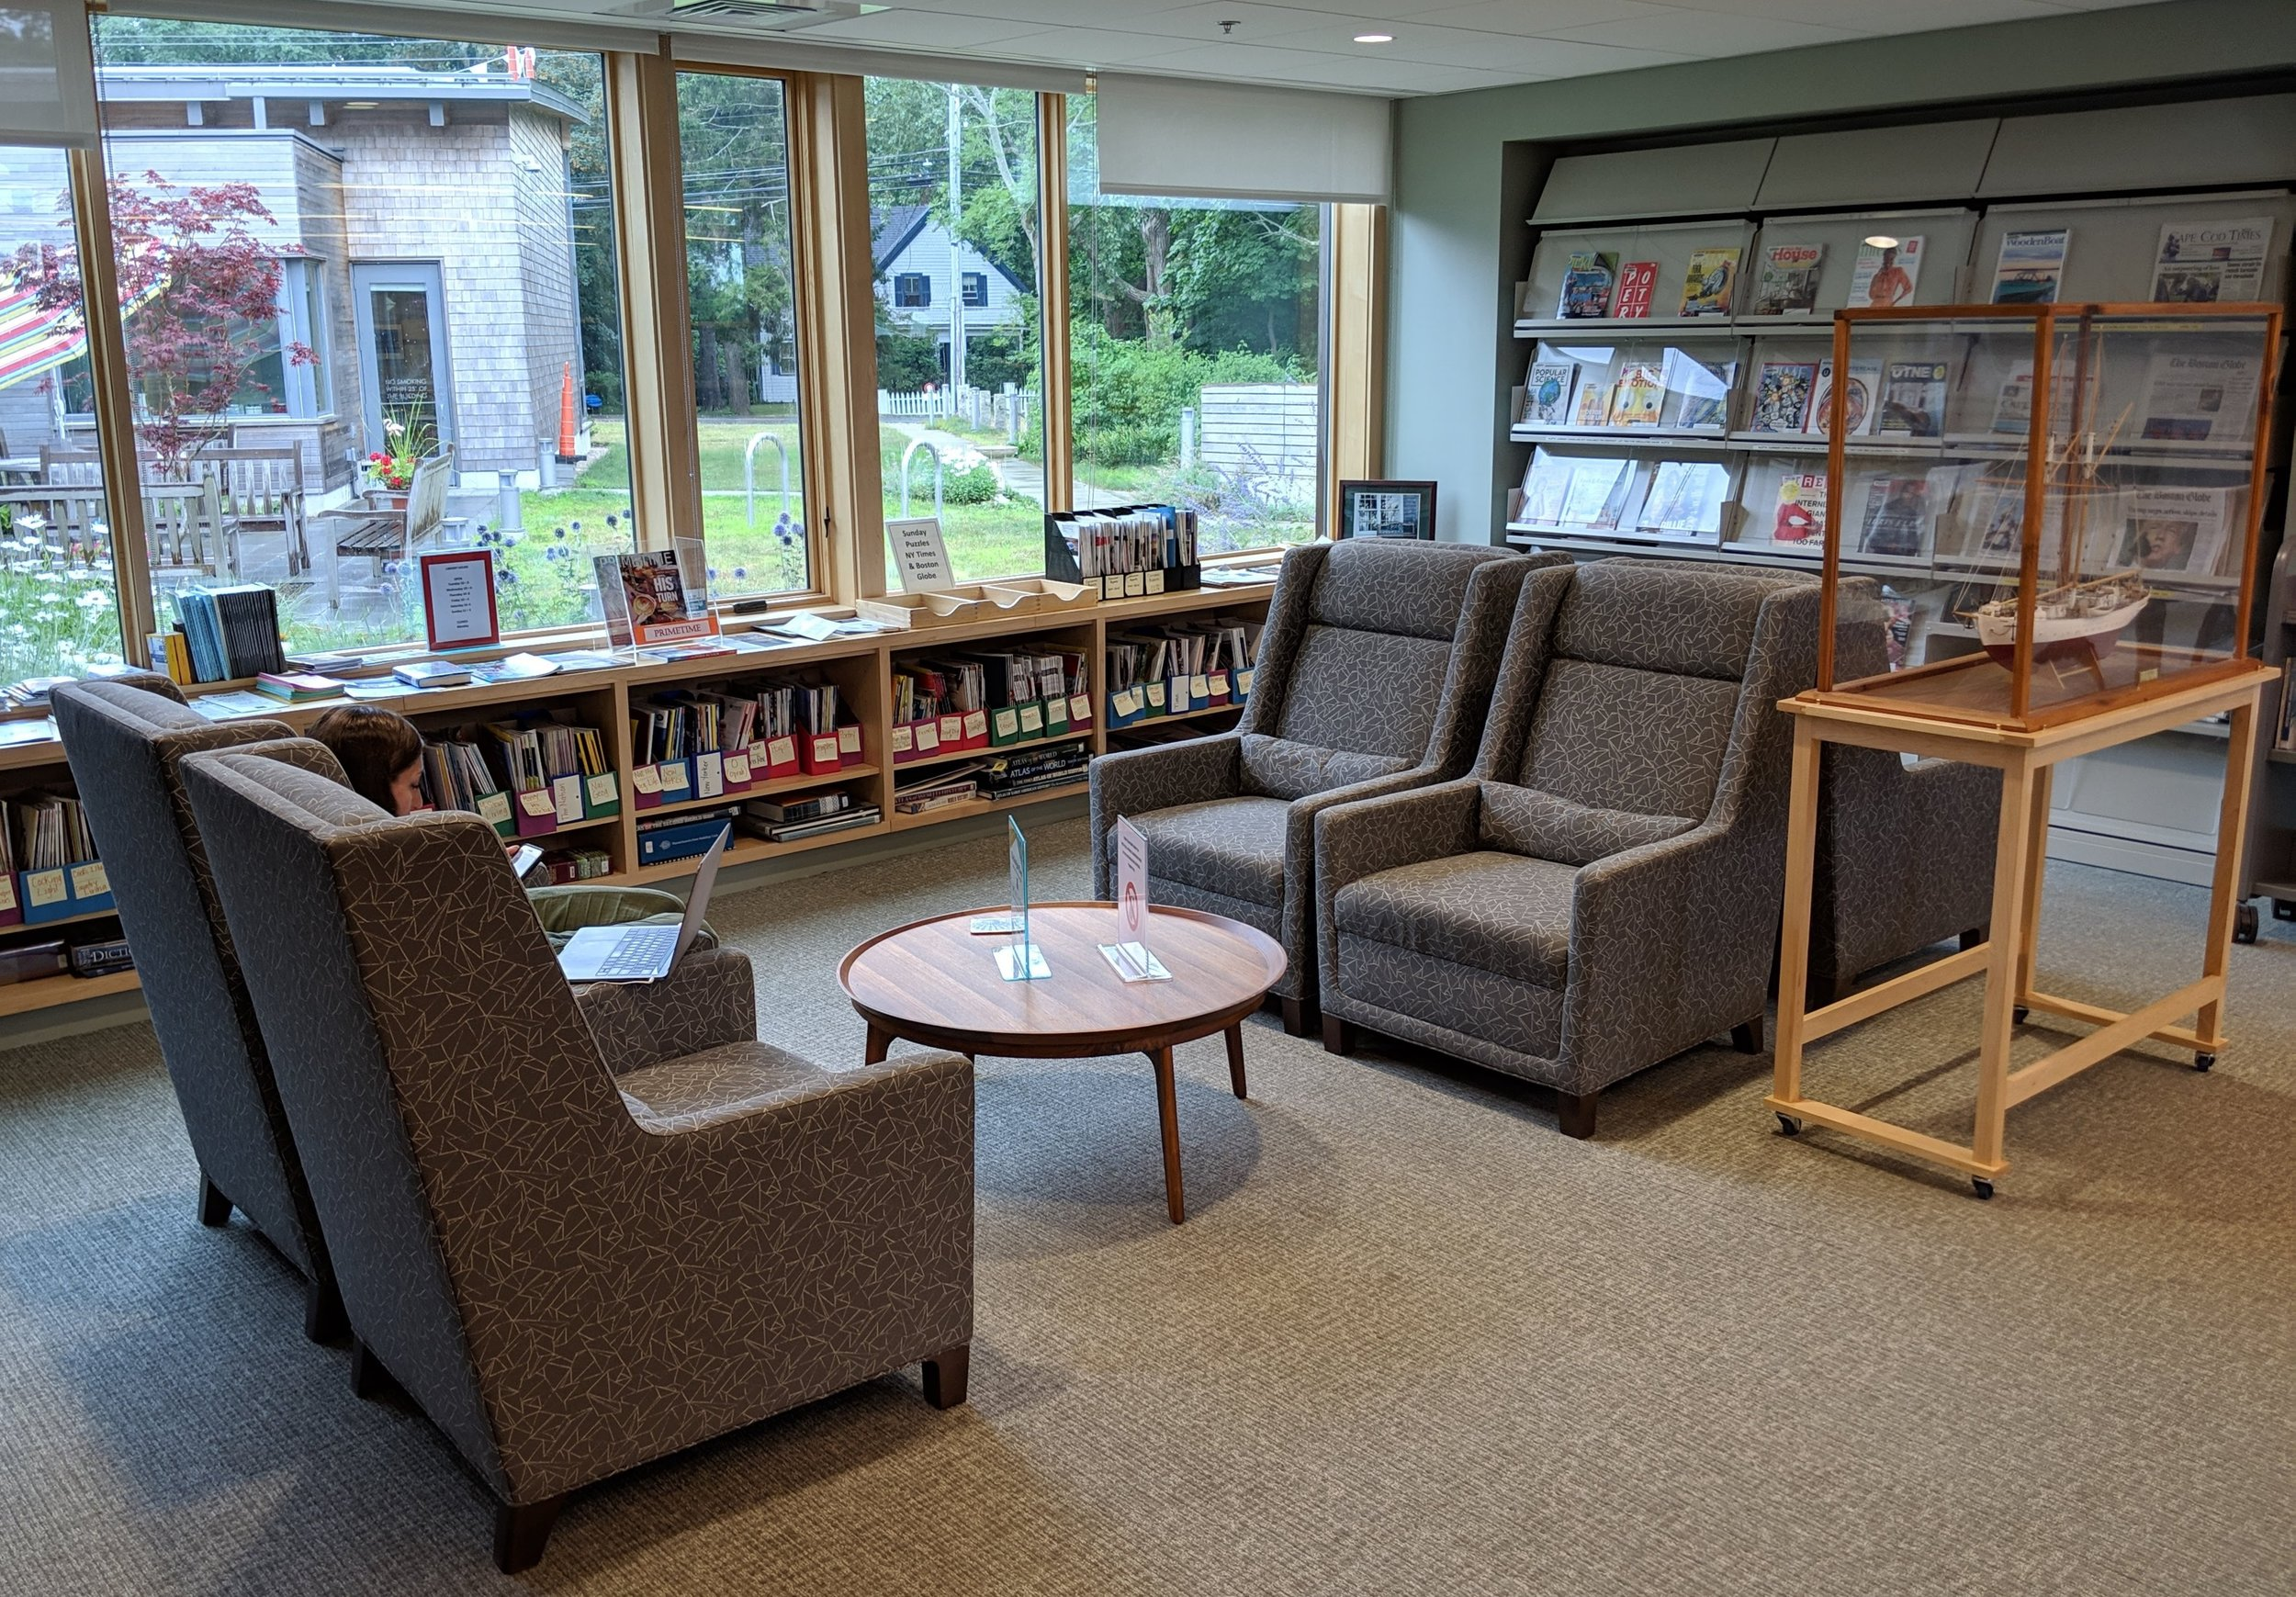 One of the many seating areas at the Eastham Library.